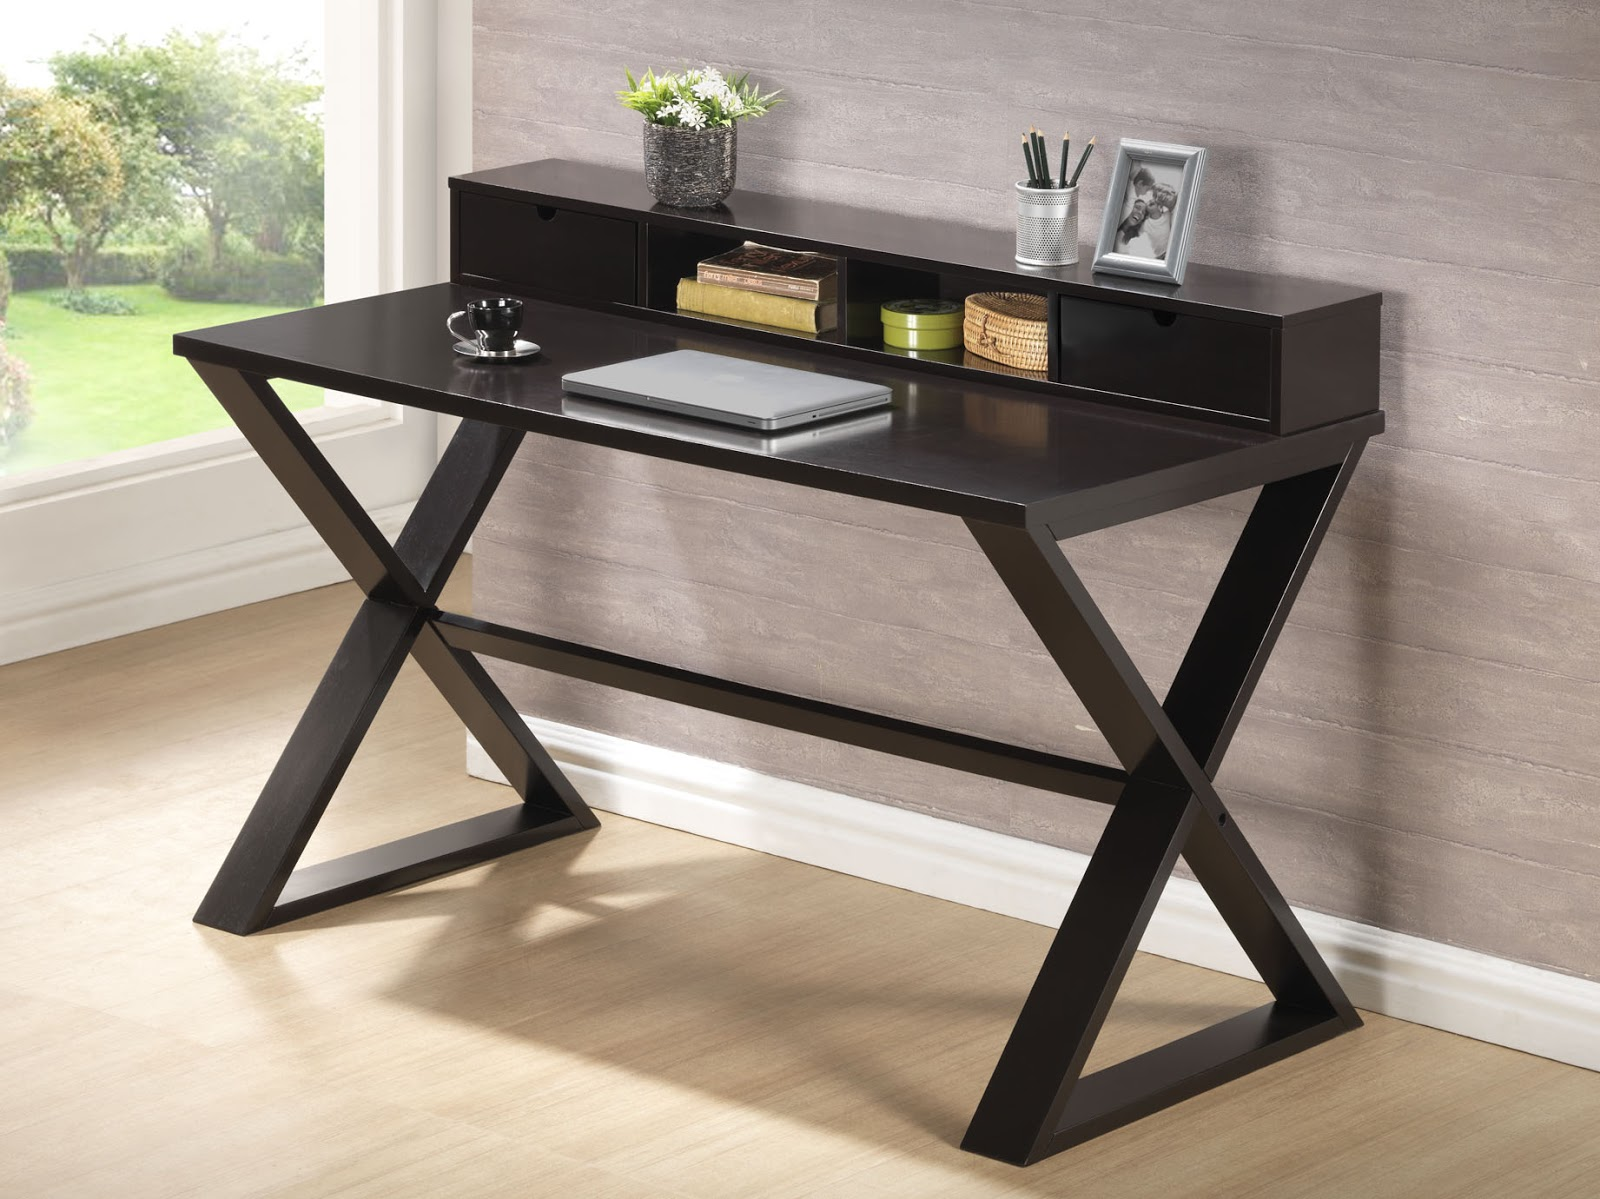 Moderner Schreibtisch Chicago Furniture | Interior Express Outlet Blog